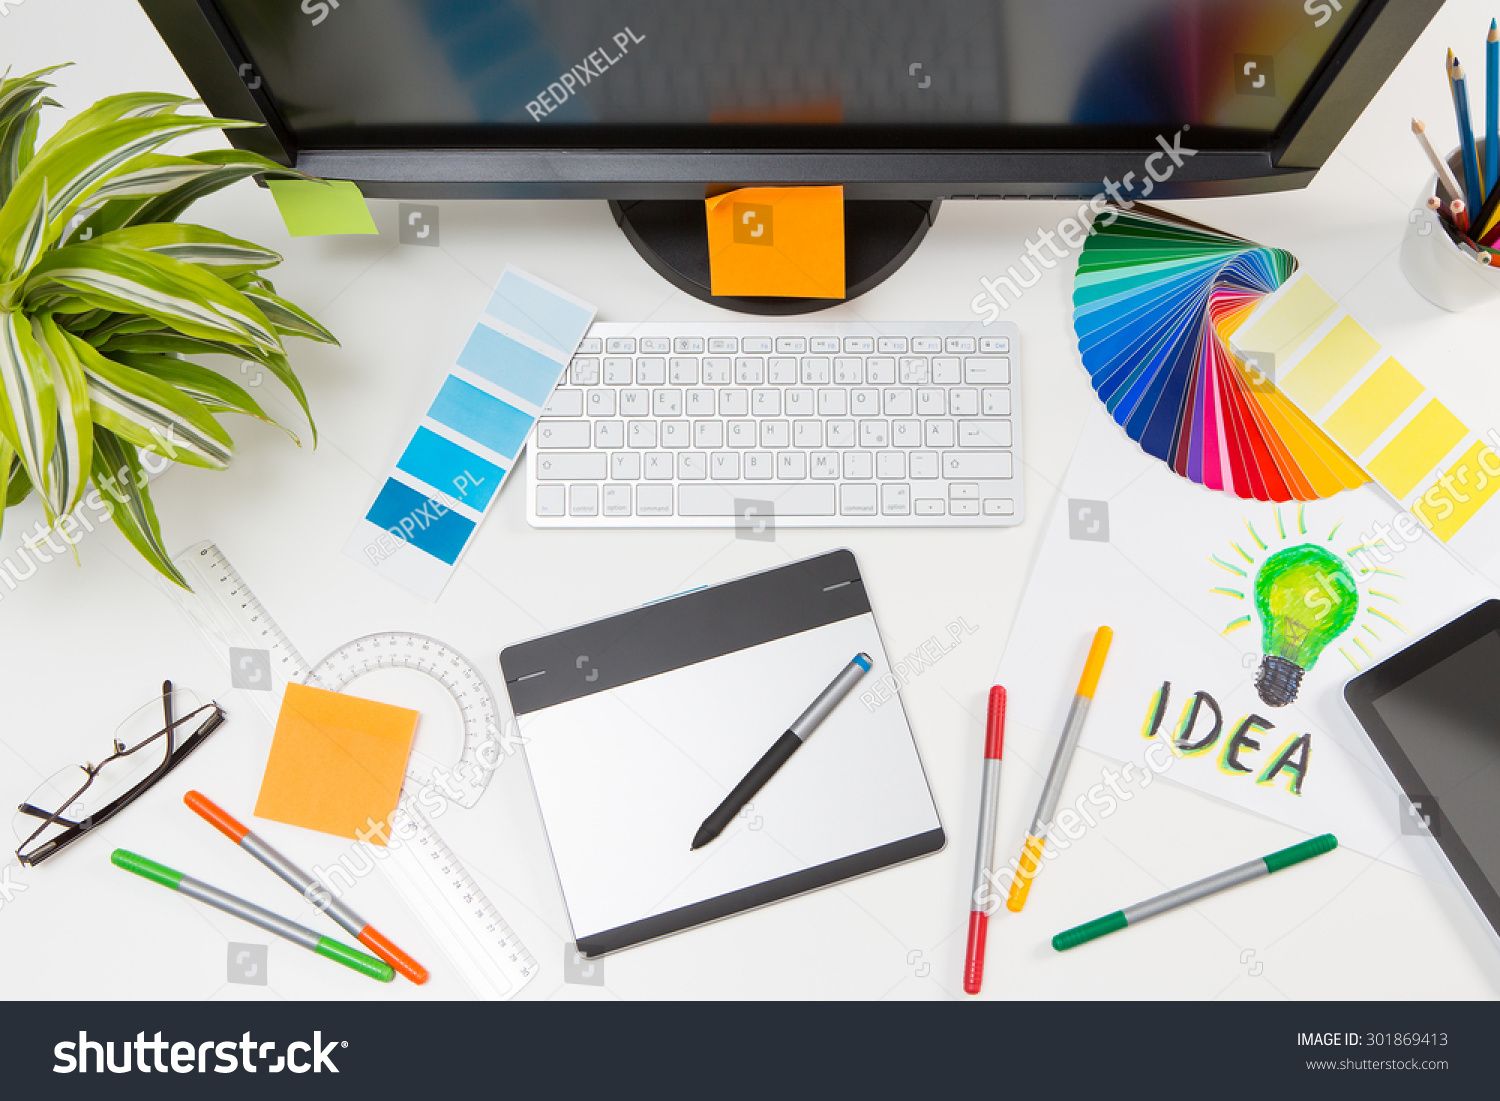 Graphic Designer Work Color Swatch Samples Stock Photo 301869413 Shutterstock